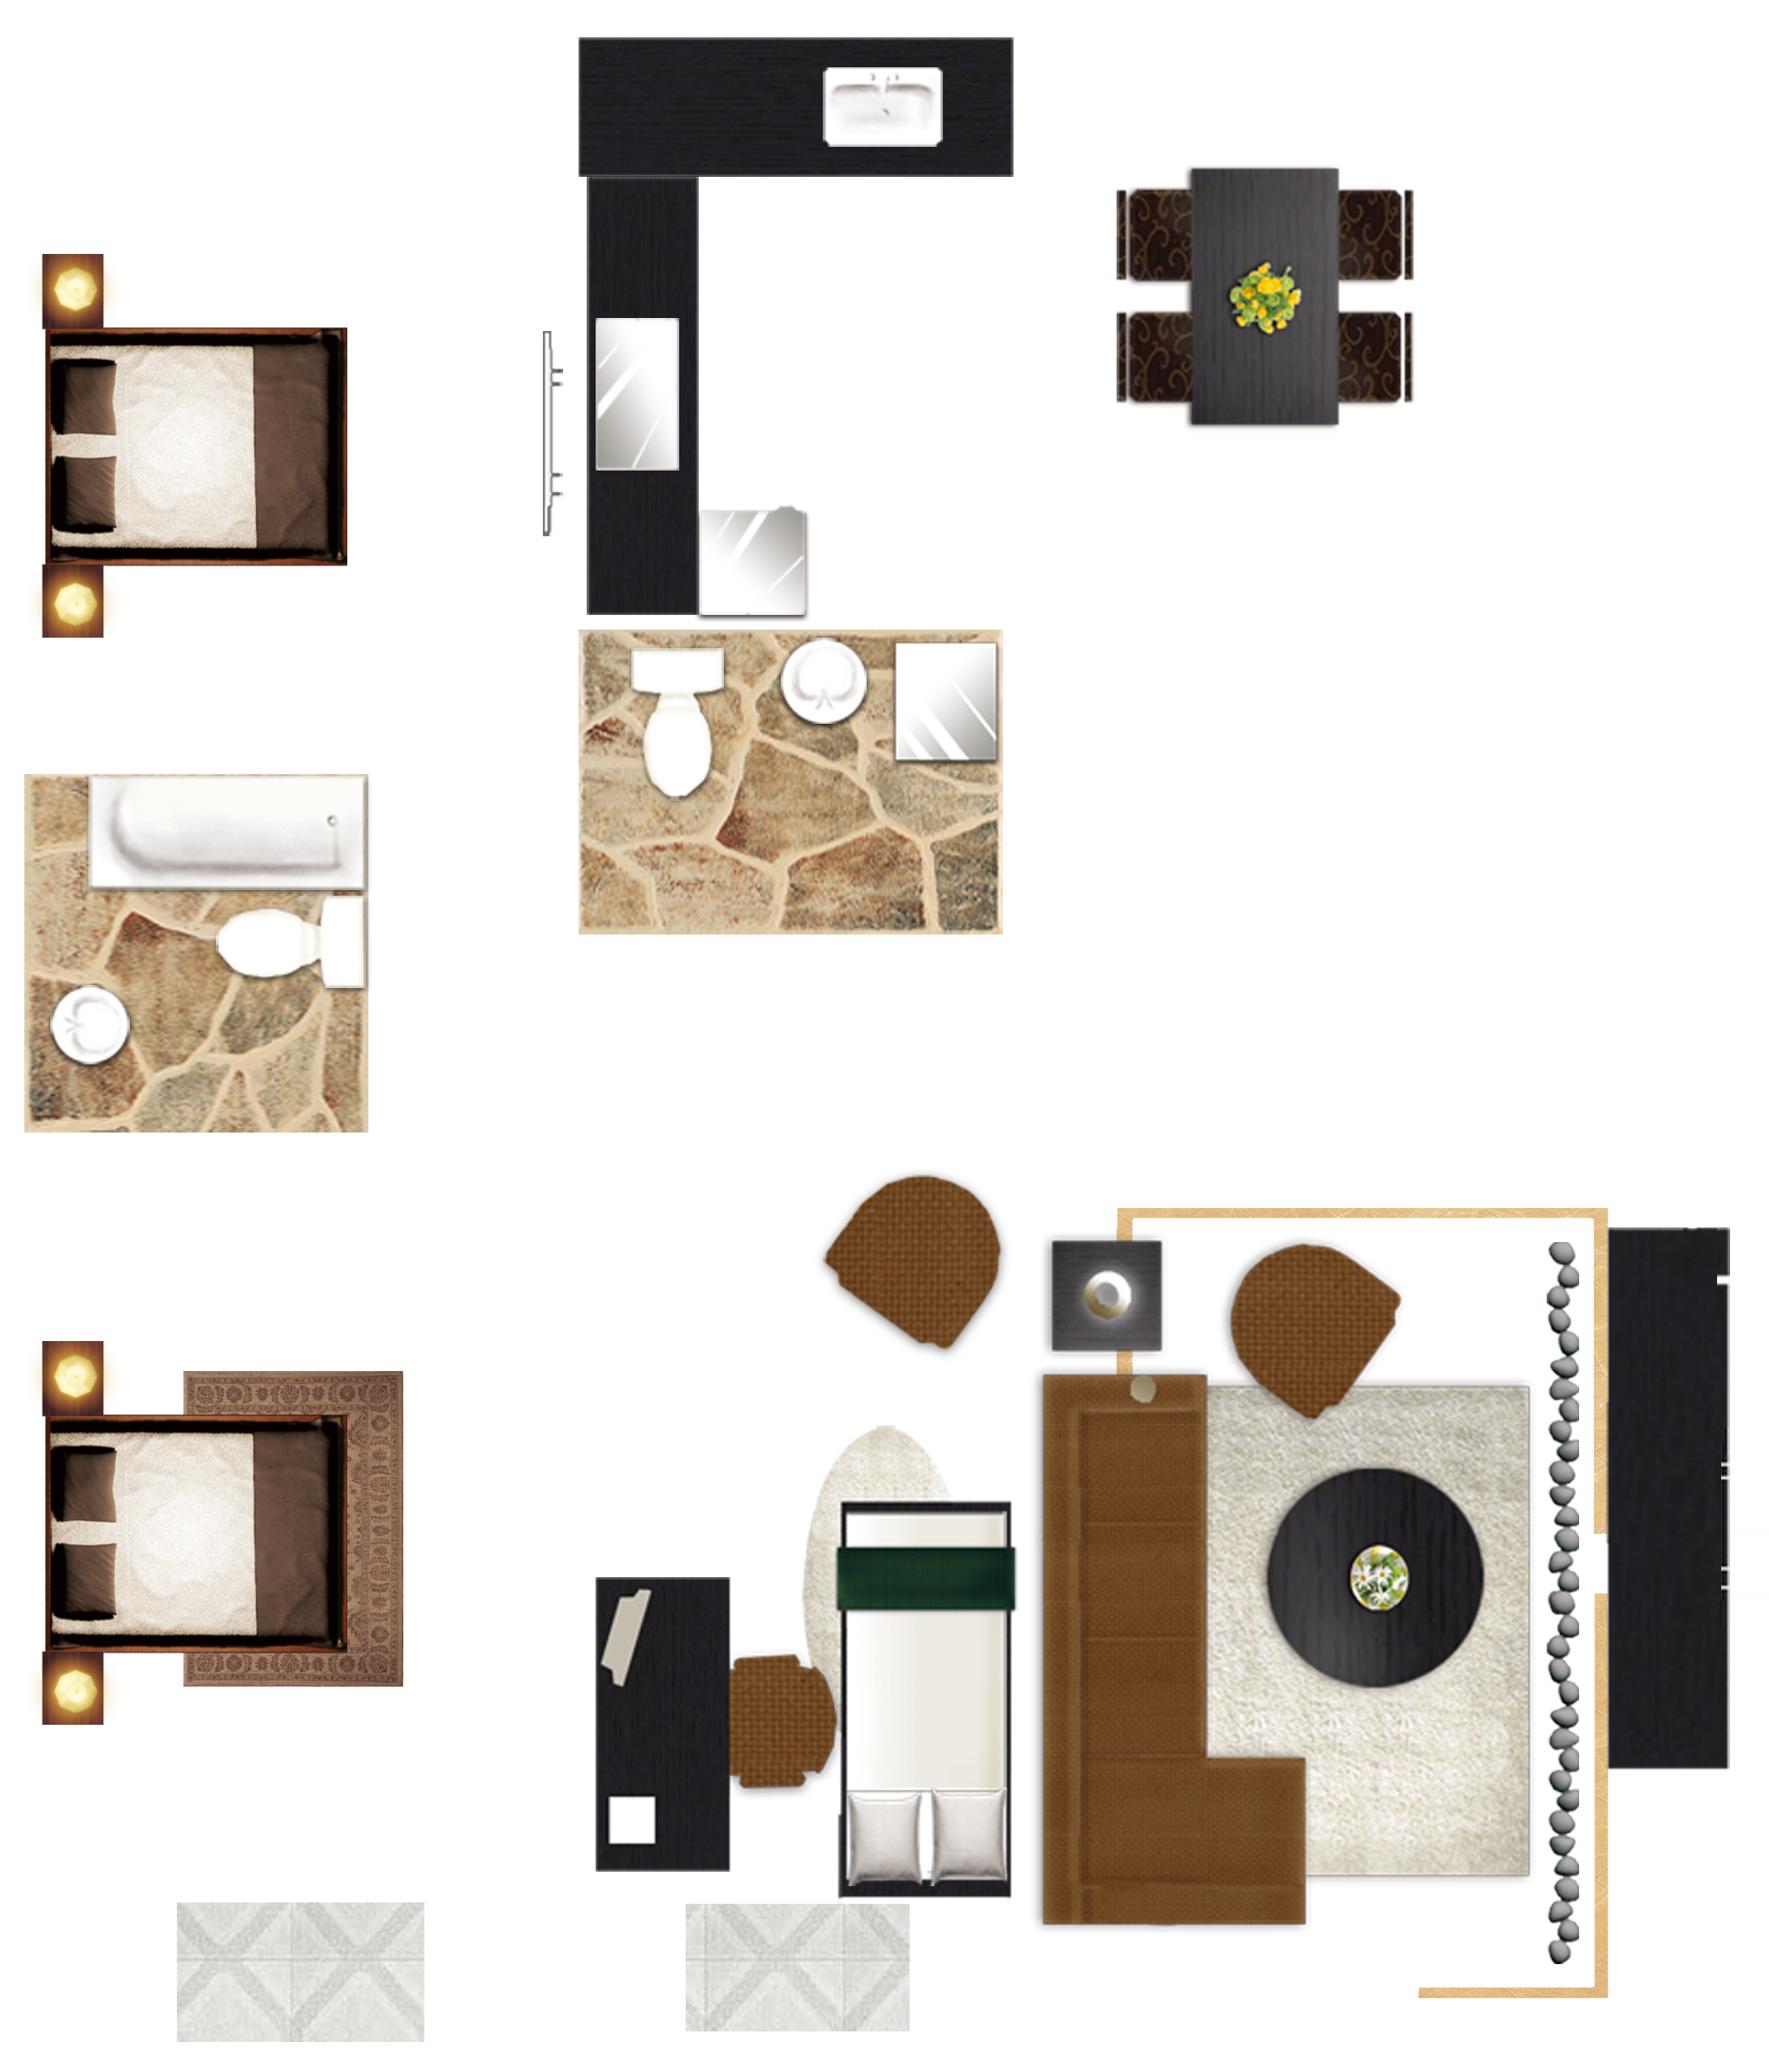 Furniture floor png. Plan house painter and